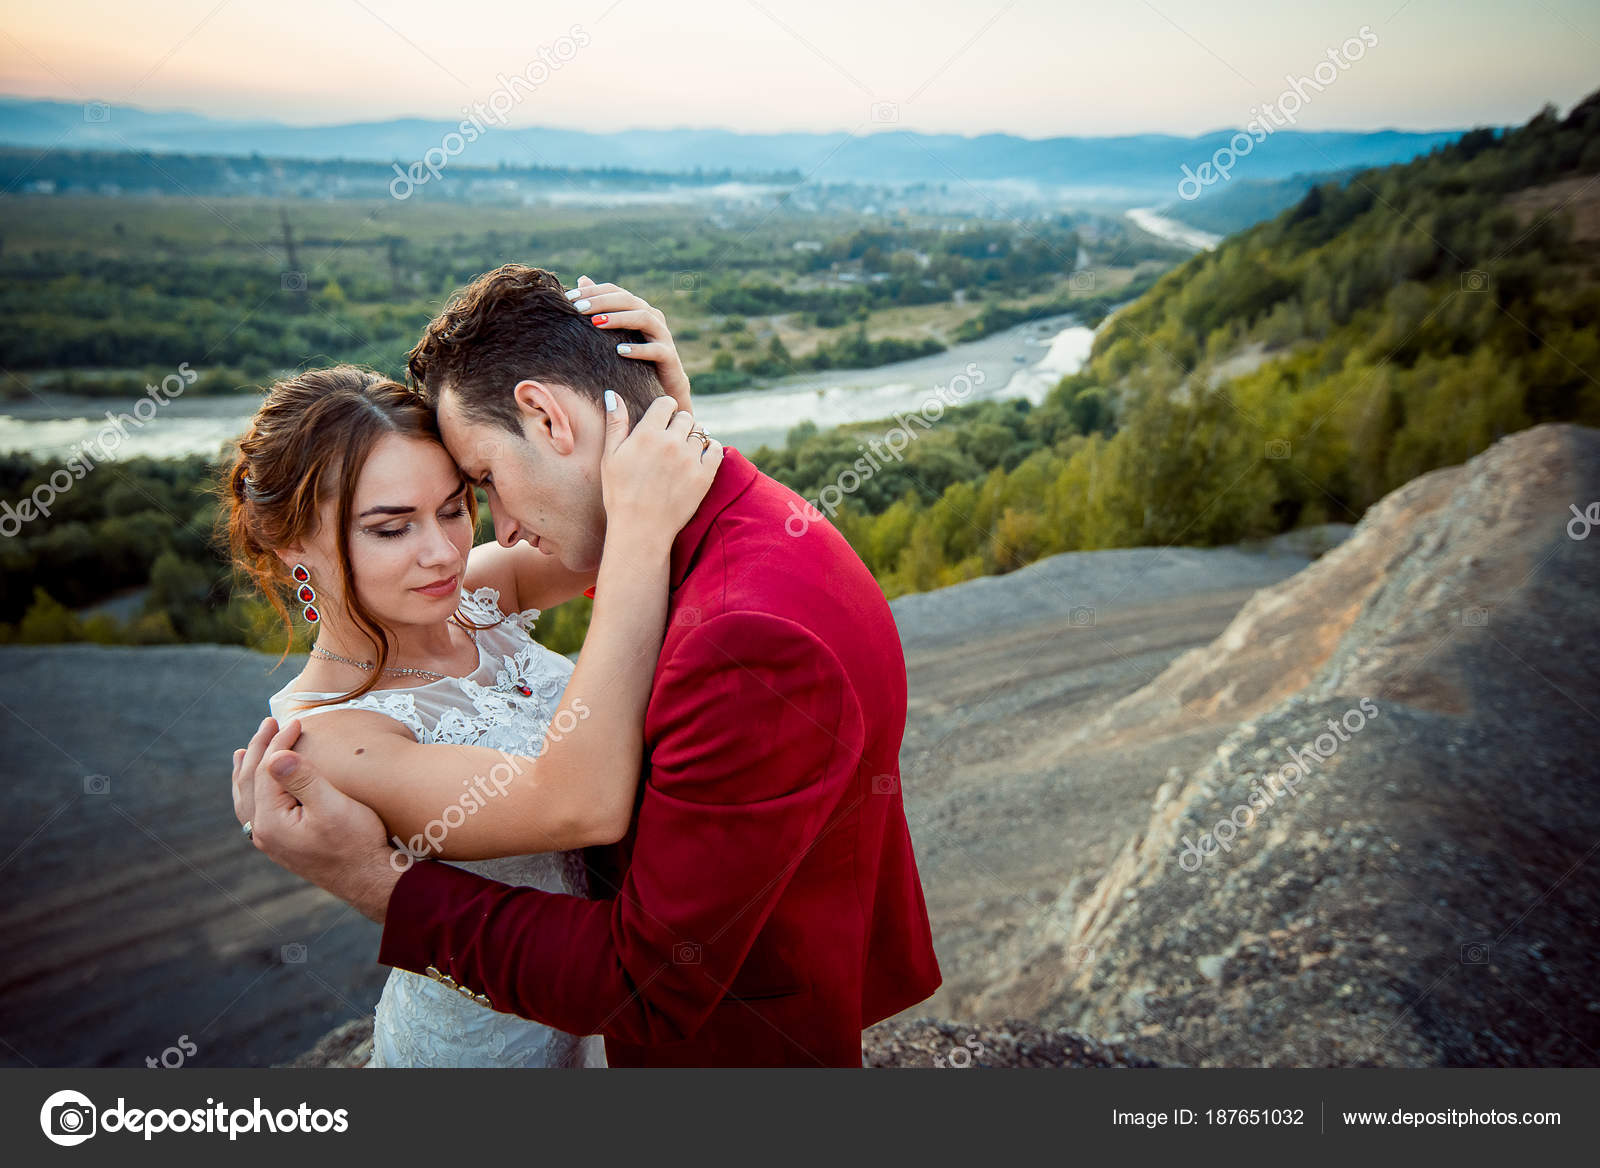 Wedding Outdoor Portrait Beautiful Newlyweds Are Tenderly